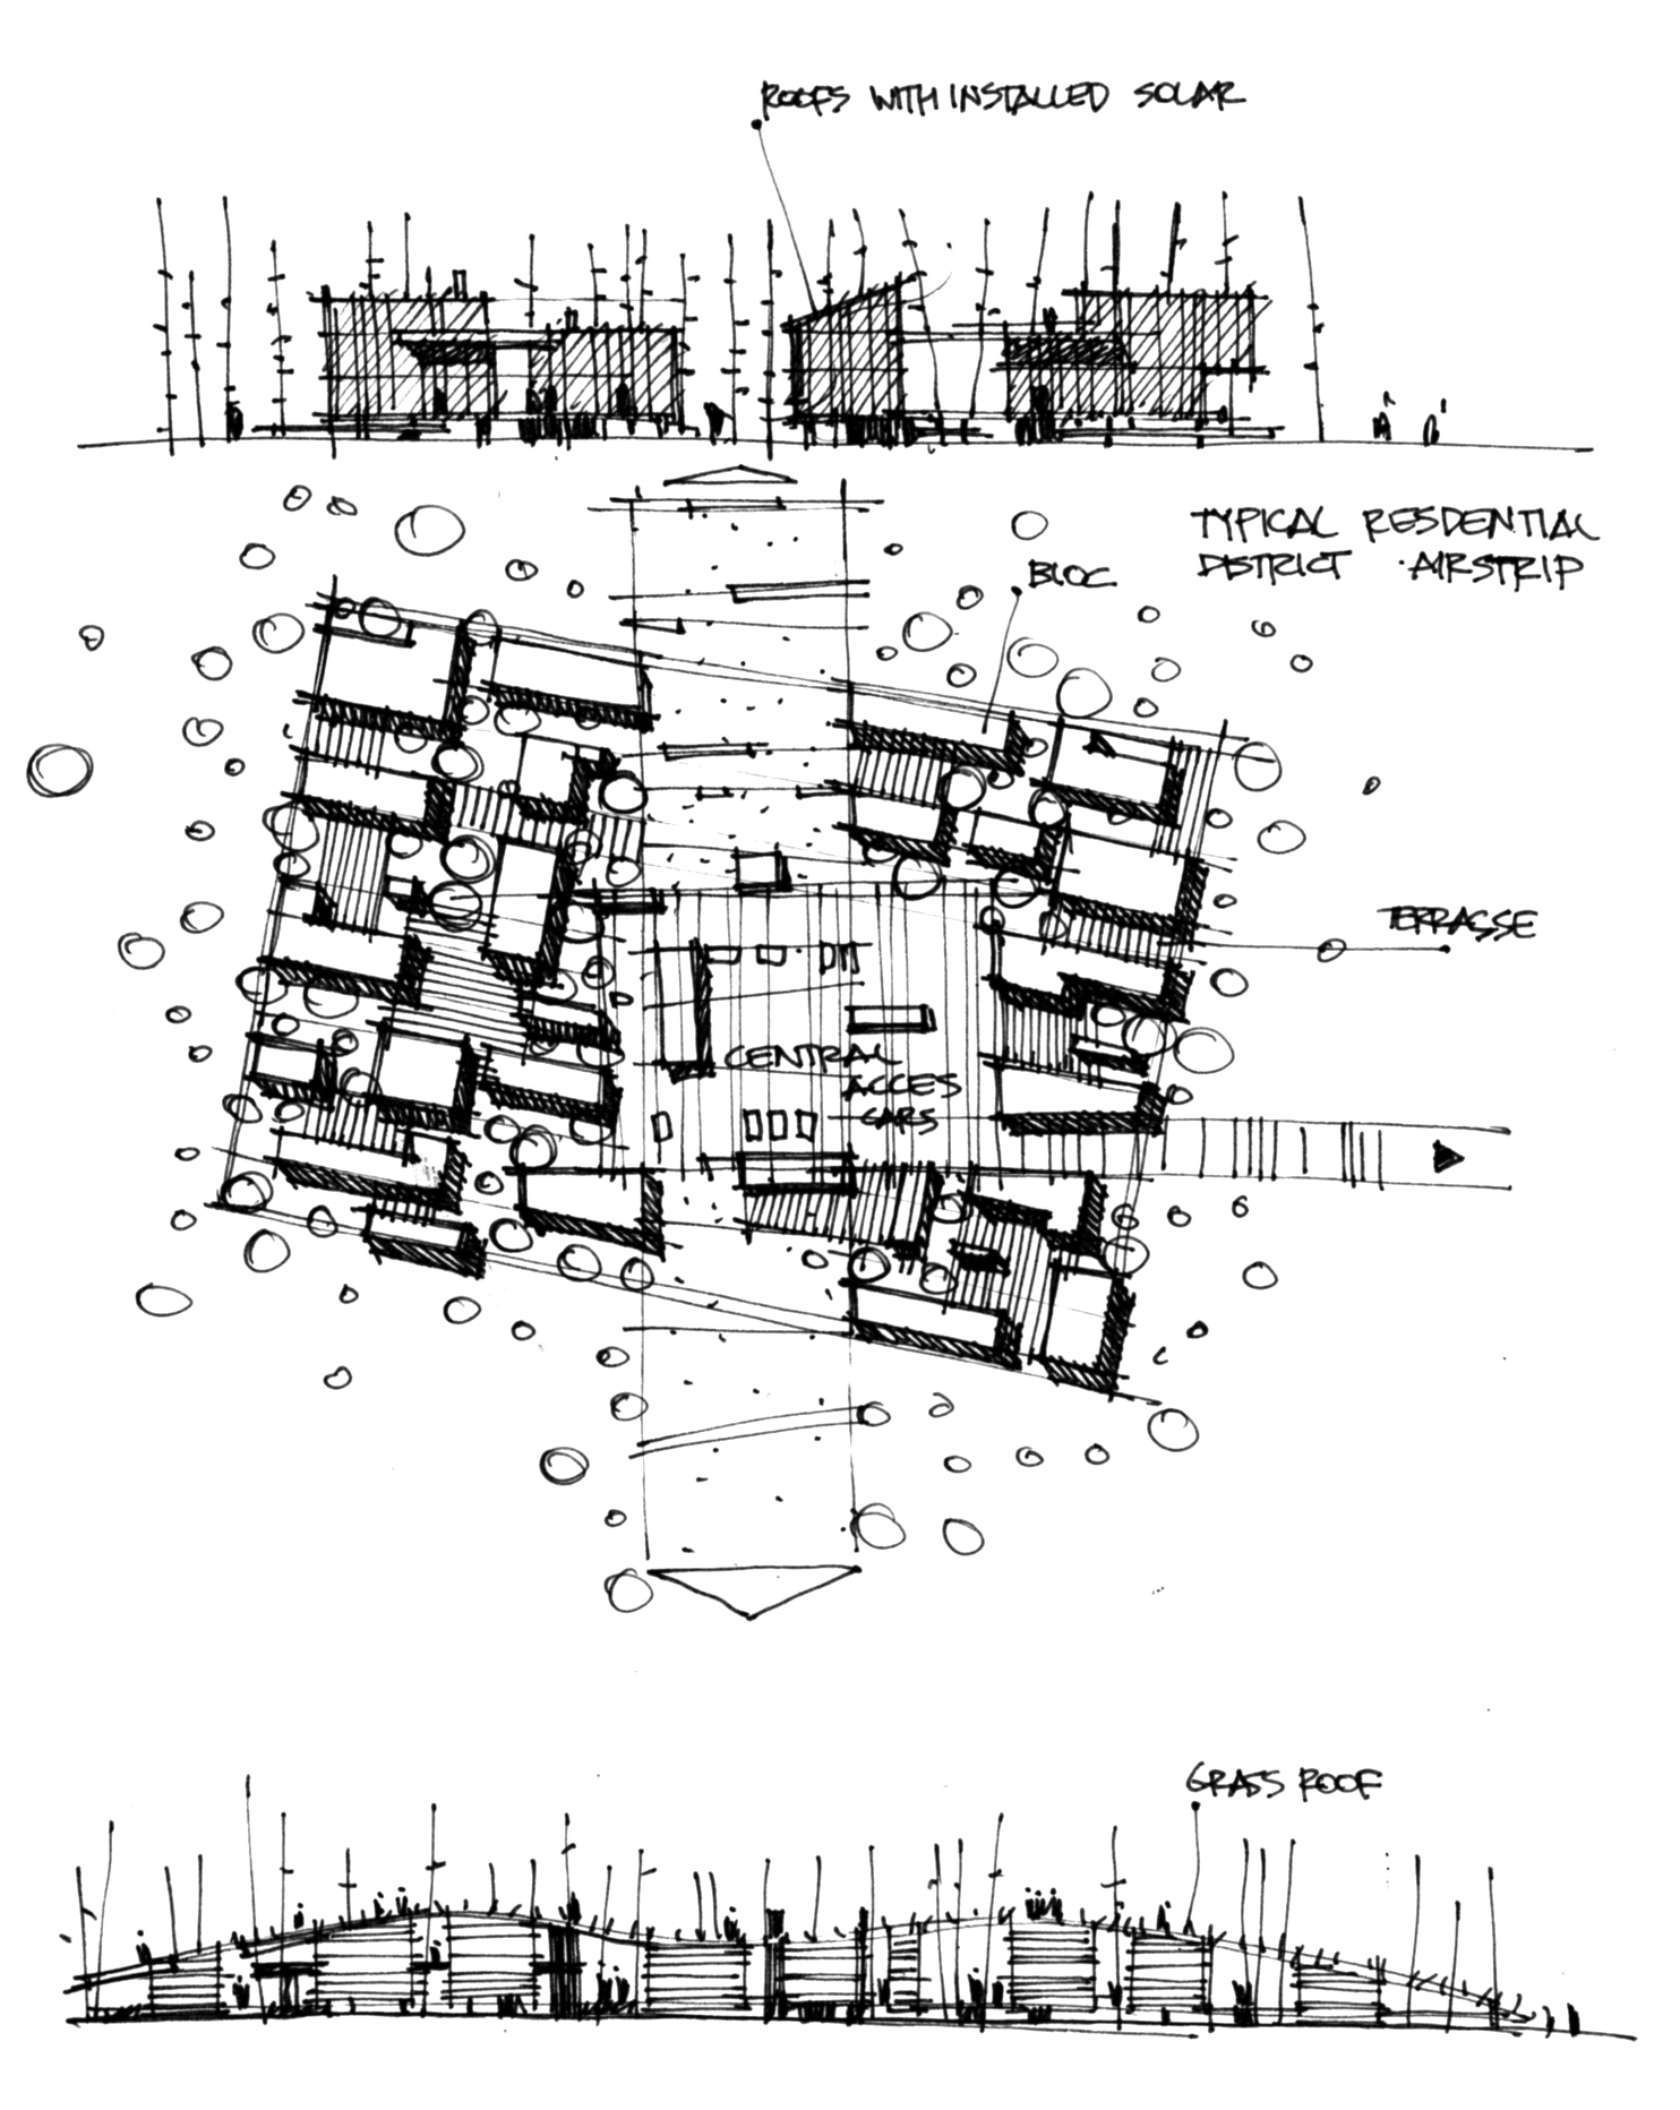 Using Different Perspectives Of The Urban Space To Represent Cut Elements Using Cross Hatching